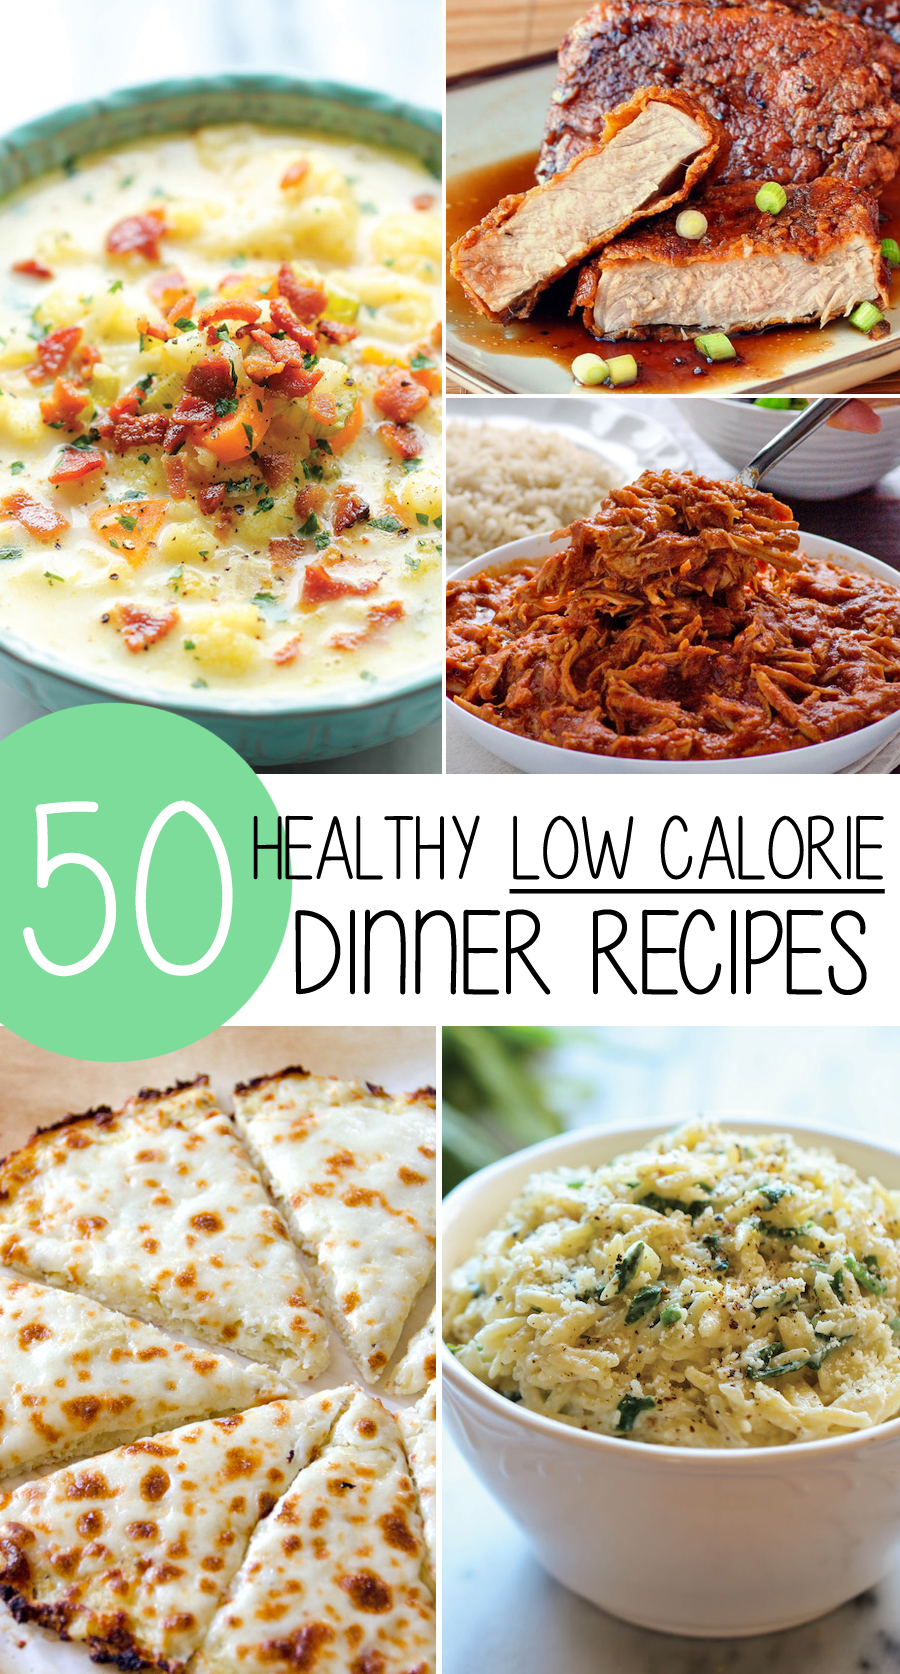 50 healthy low calorie weight loss dinner recipes 50 healthy low calorie dinner recipes forumfinder Images